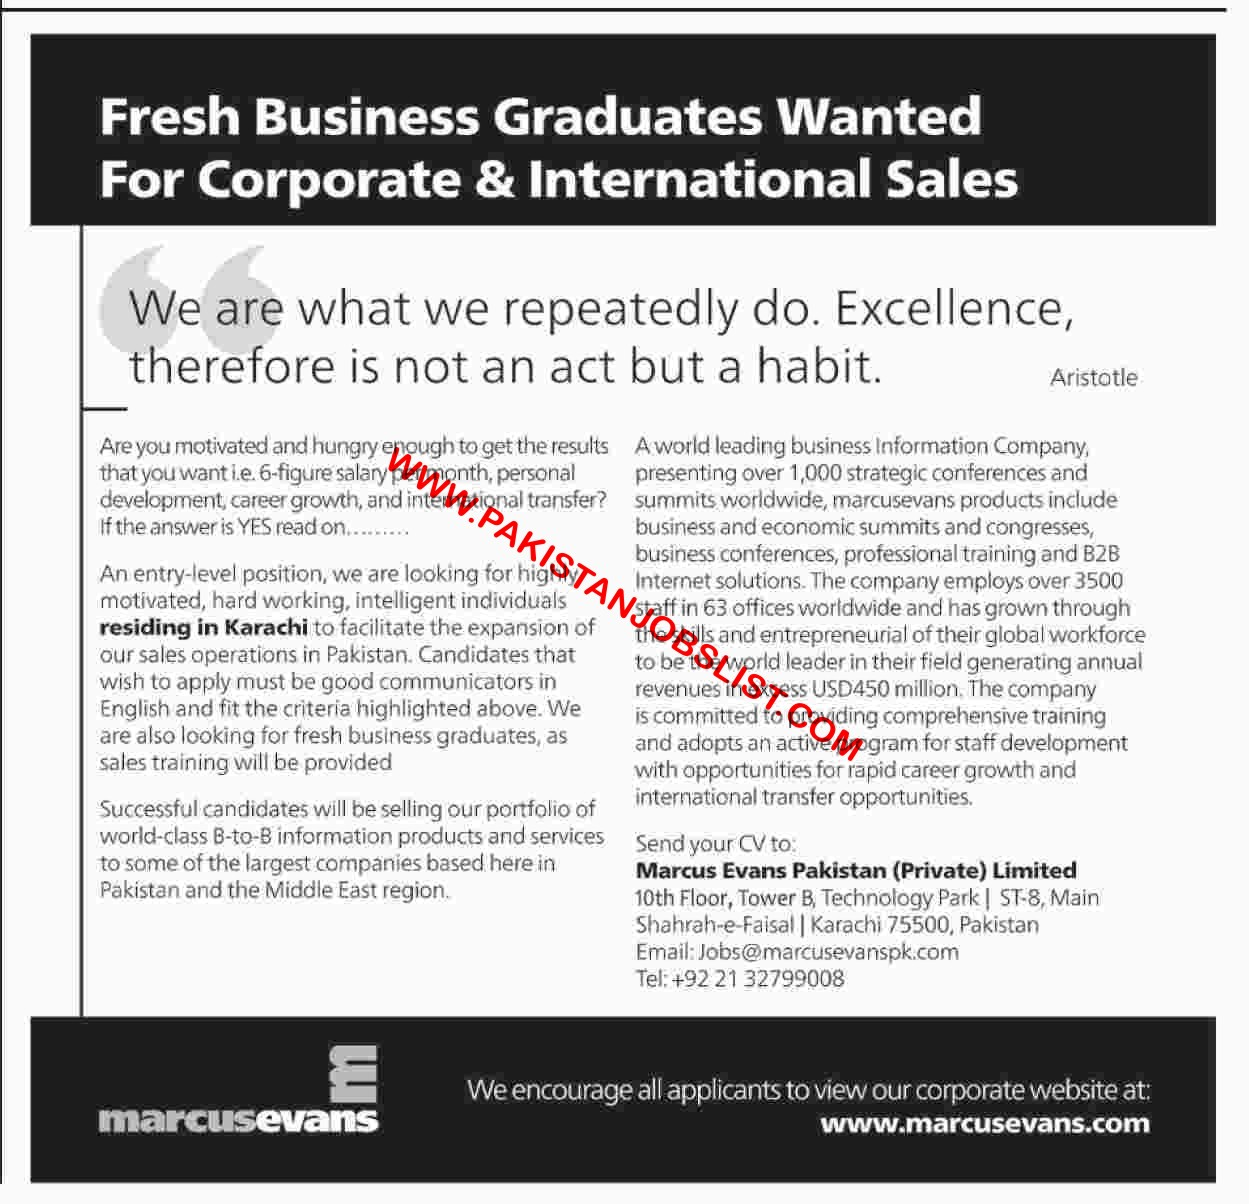 Fresh Business Graduates Wanted For Corporate & International Sales